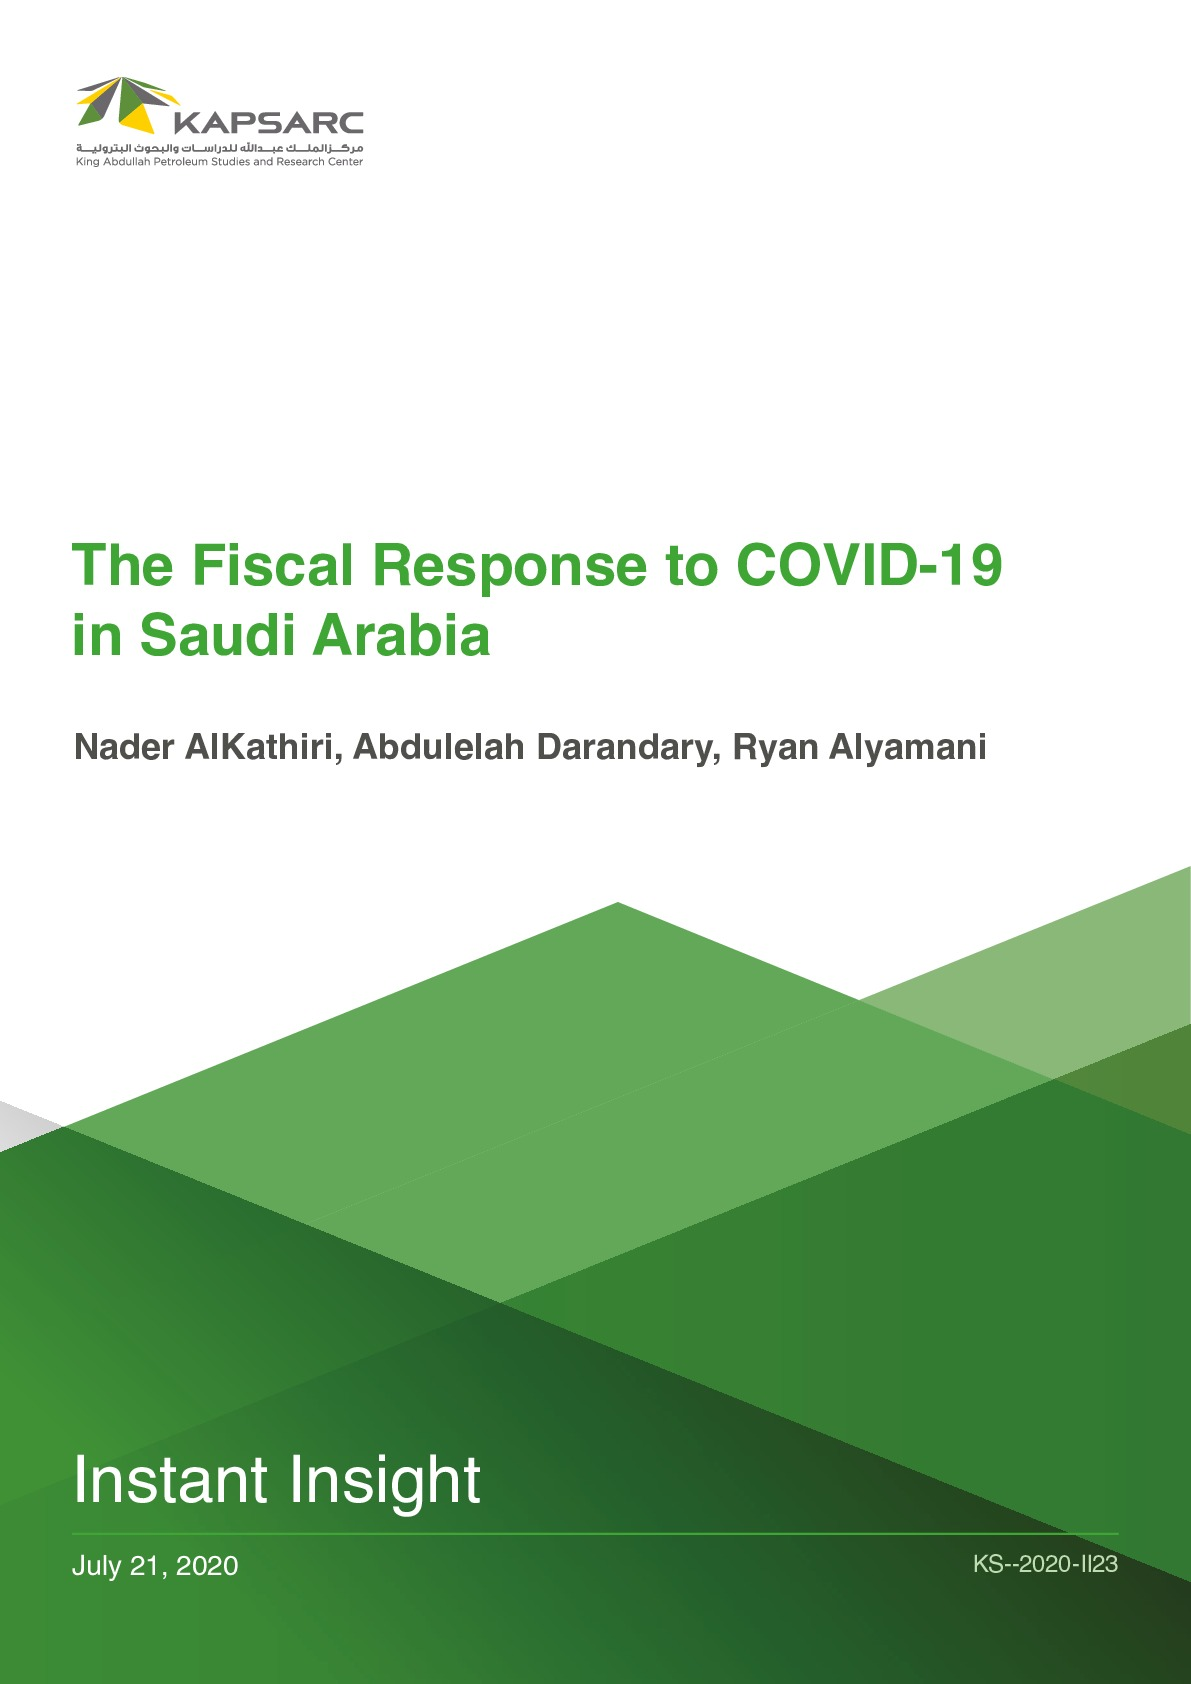 The Fiscal Response to COVID-19 in Saudi Arabia